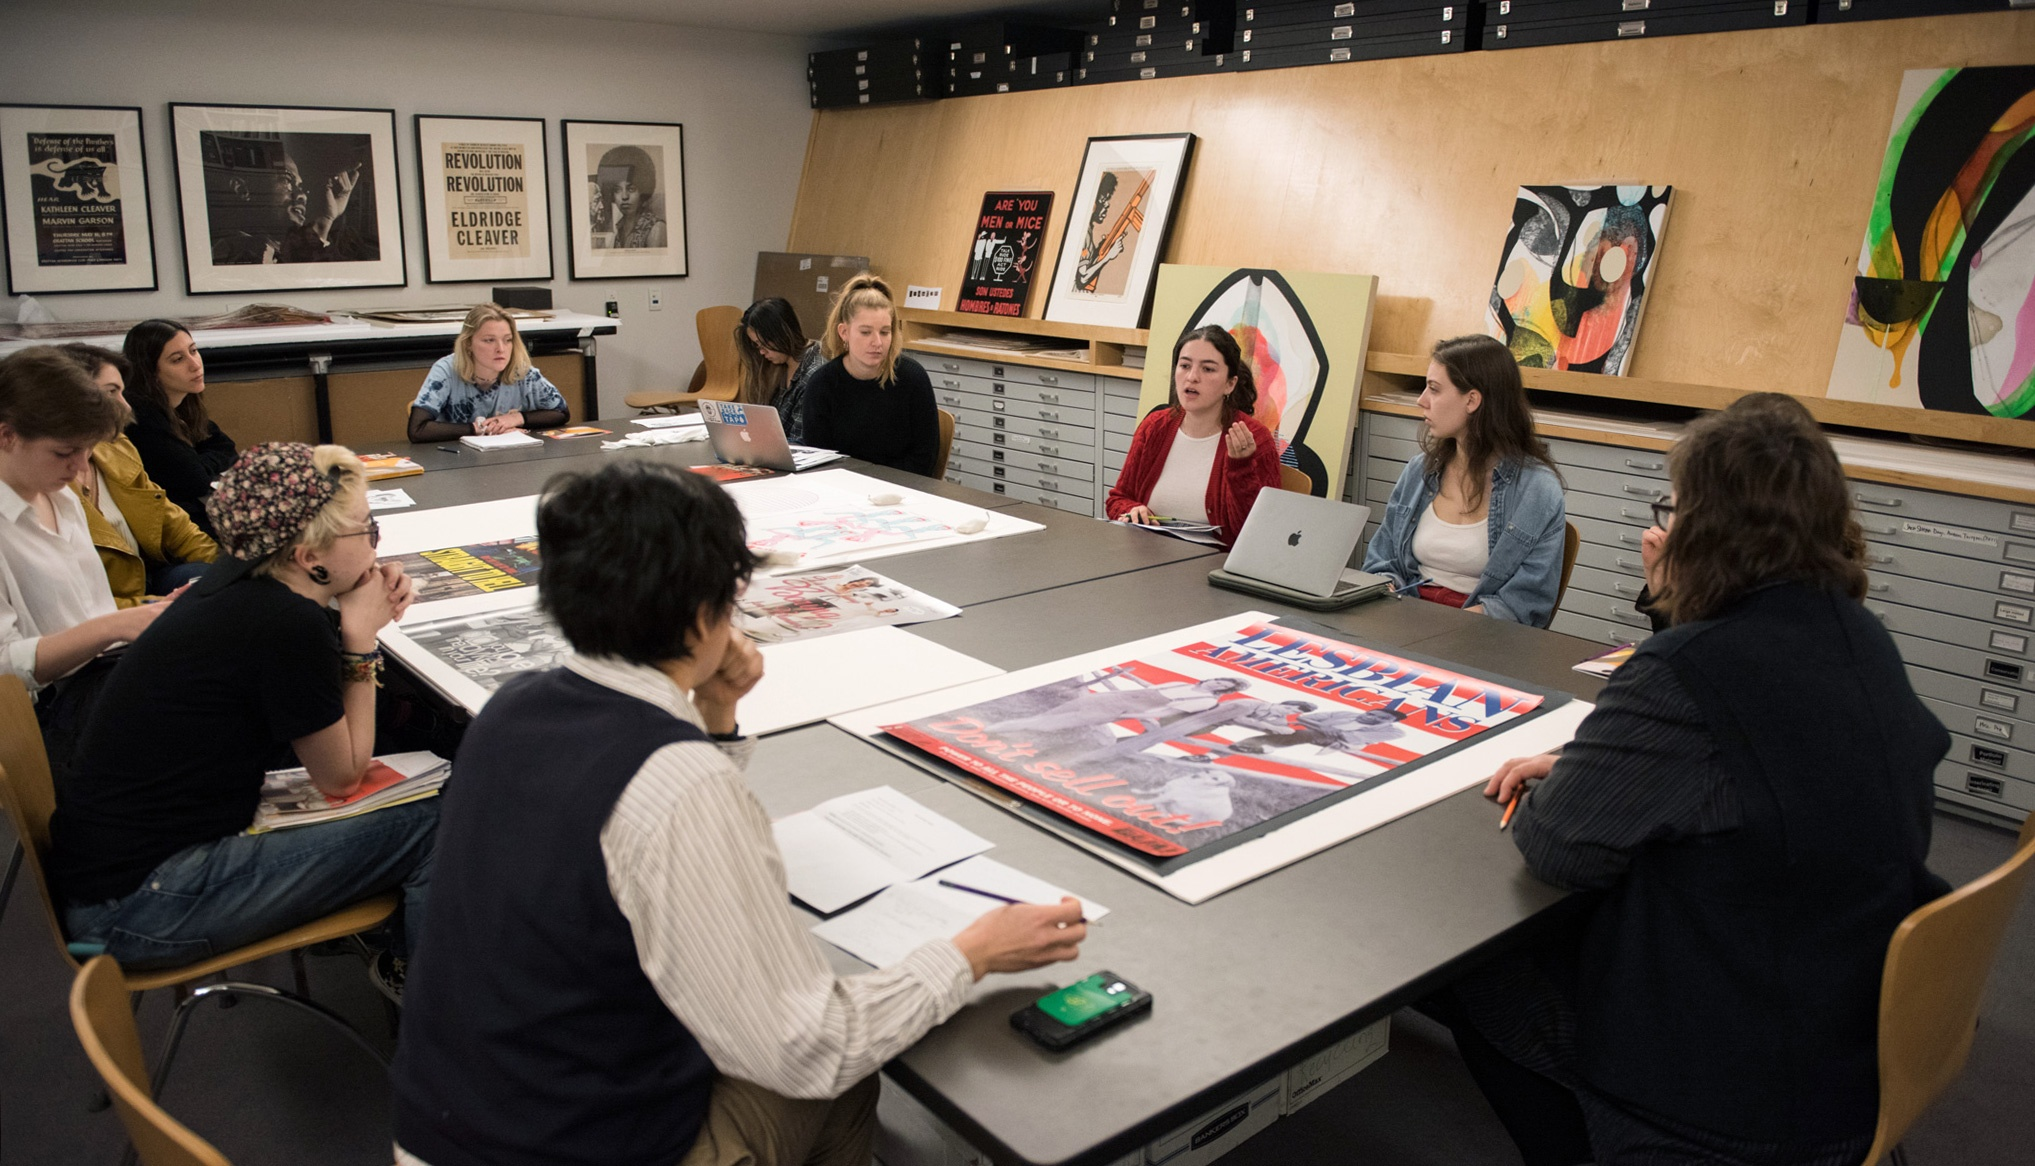 A group of young, light-skinned people sit around a table with posters laid out on it.